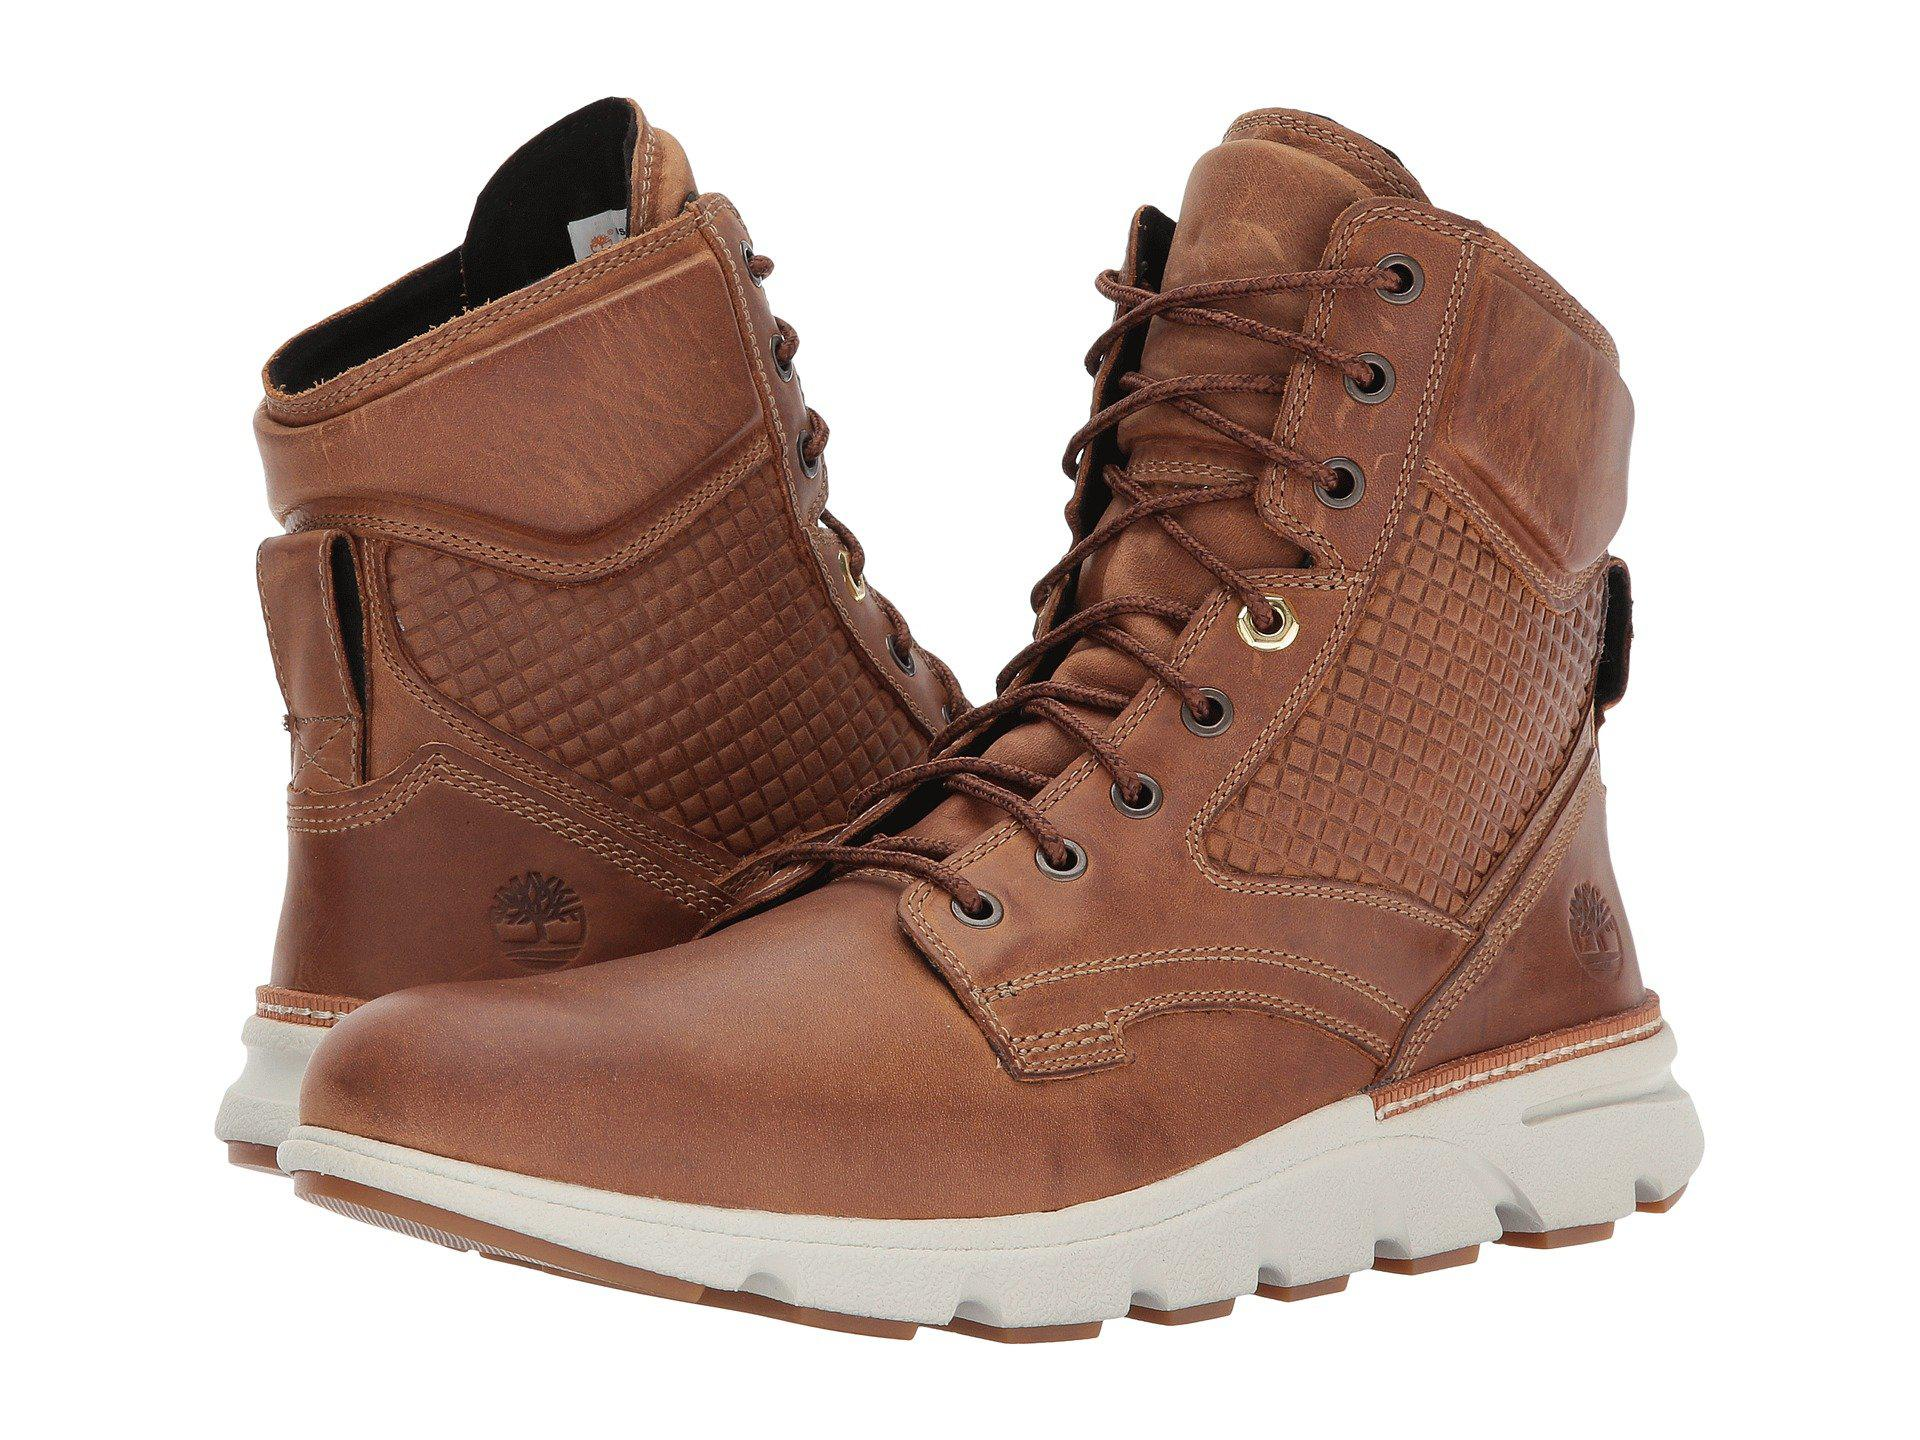 Eagle Bay Leather/Fabric Boot Timberland xbvqM